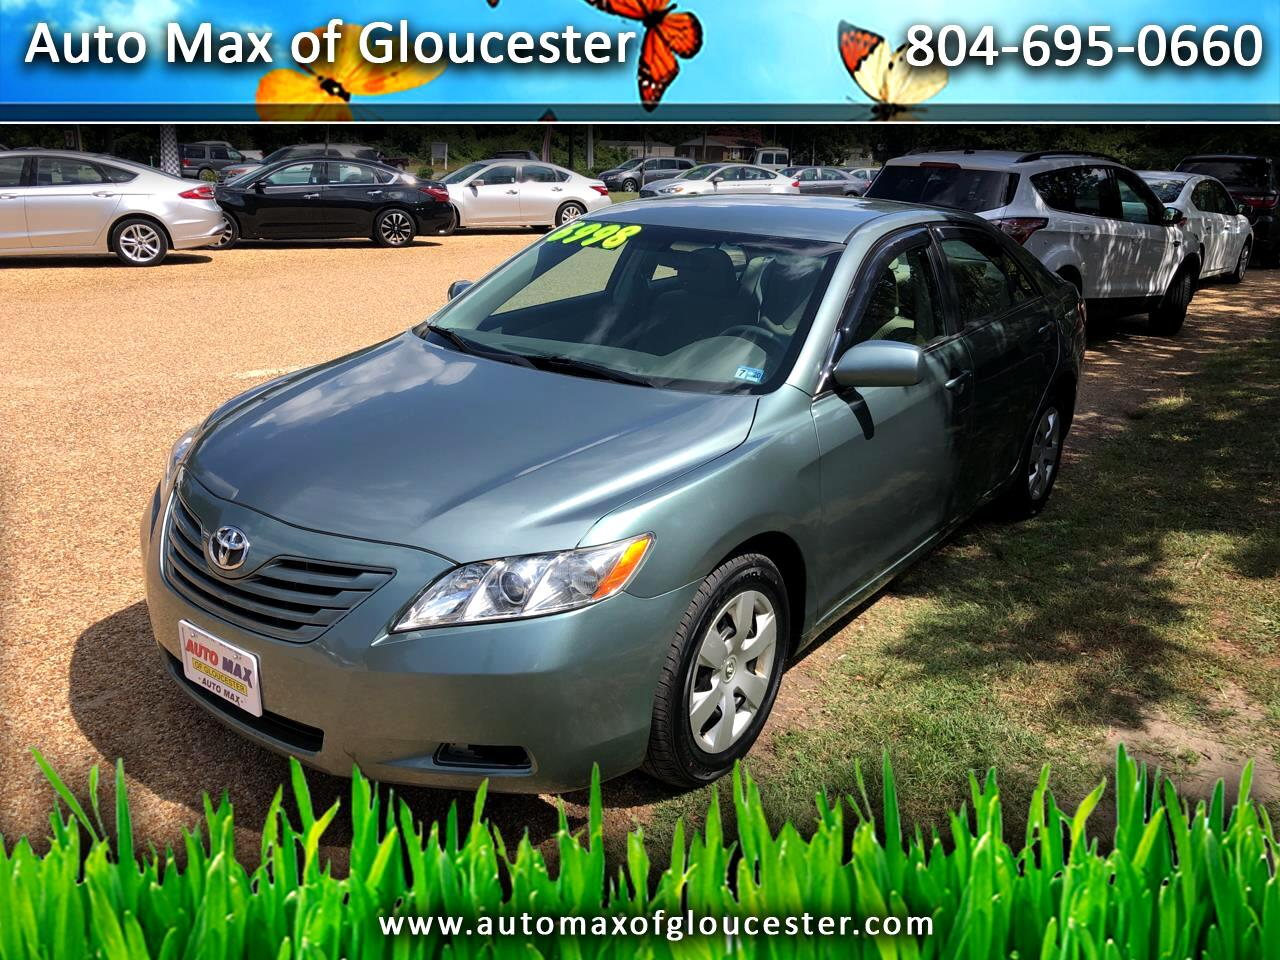 2007 Toyota Camry 4dr Sdn V6 Auto XLE (Natl)